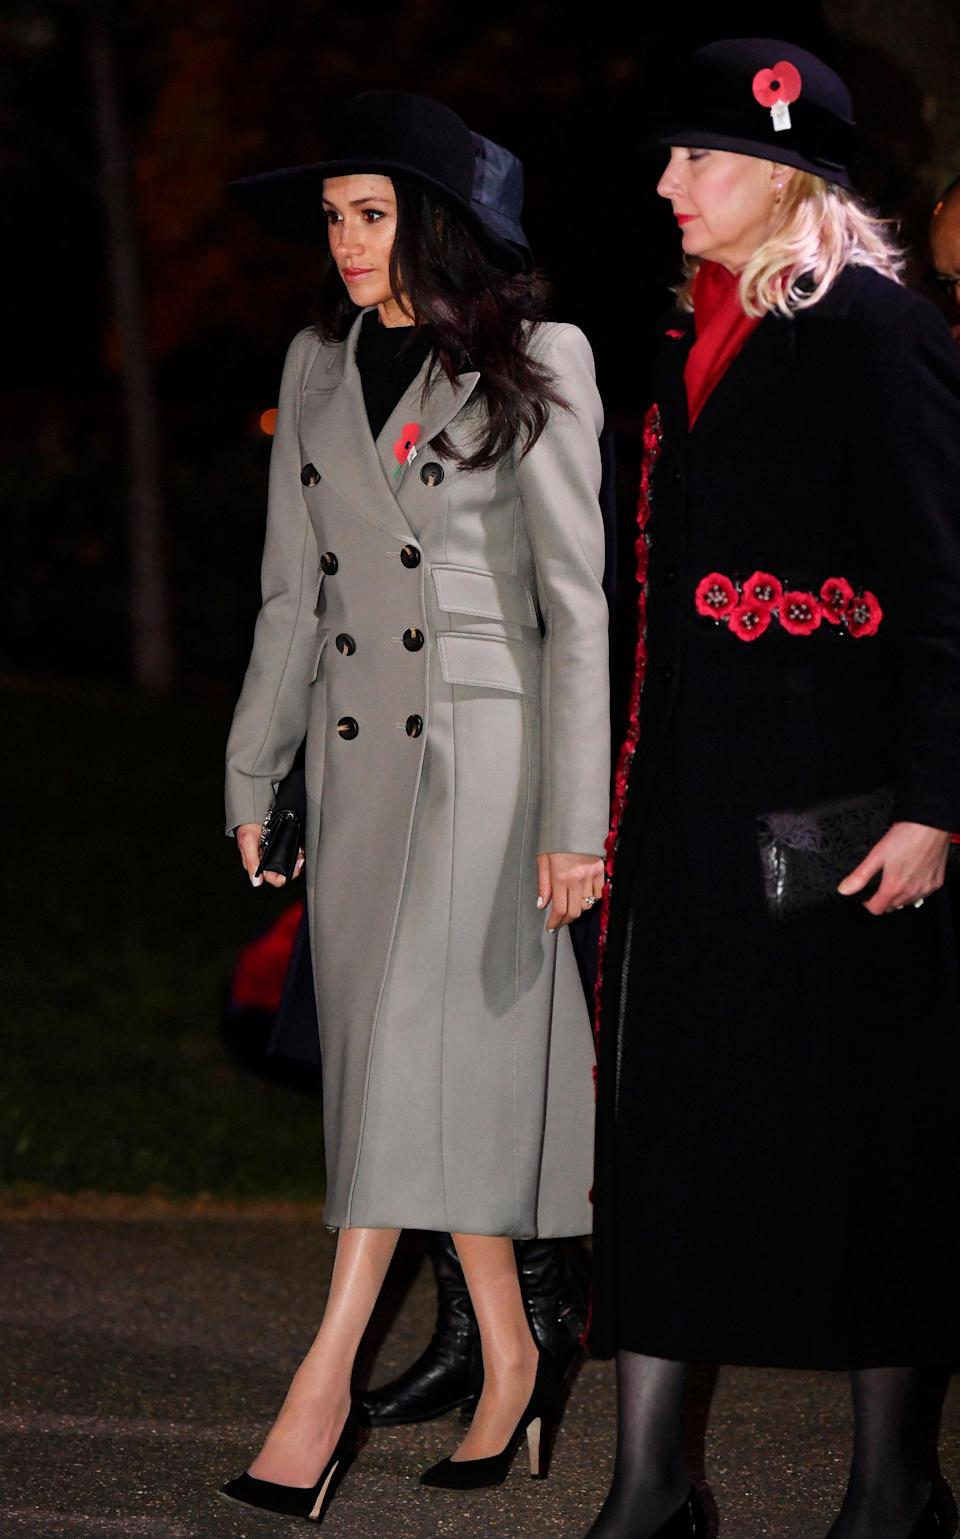 <p>Markle wore a long grey coat by Canadian designer, Smythe, for the early memorial service, as well as a wide brimmed hat. </p>